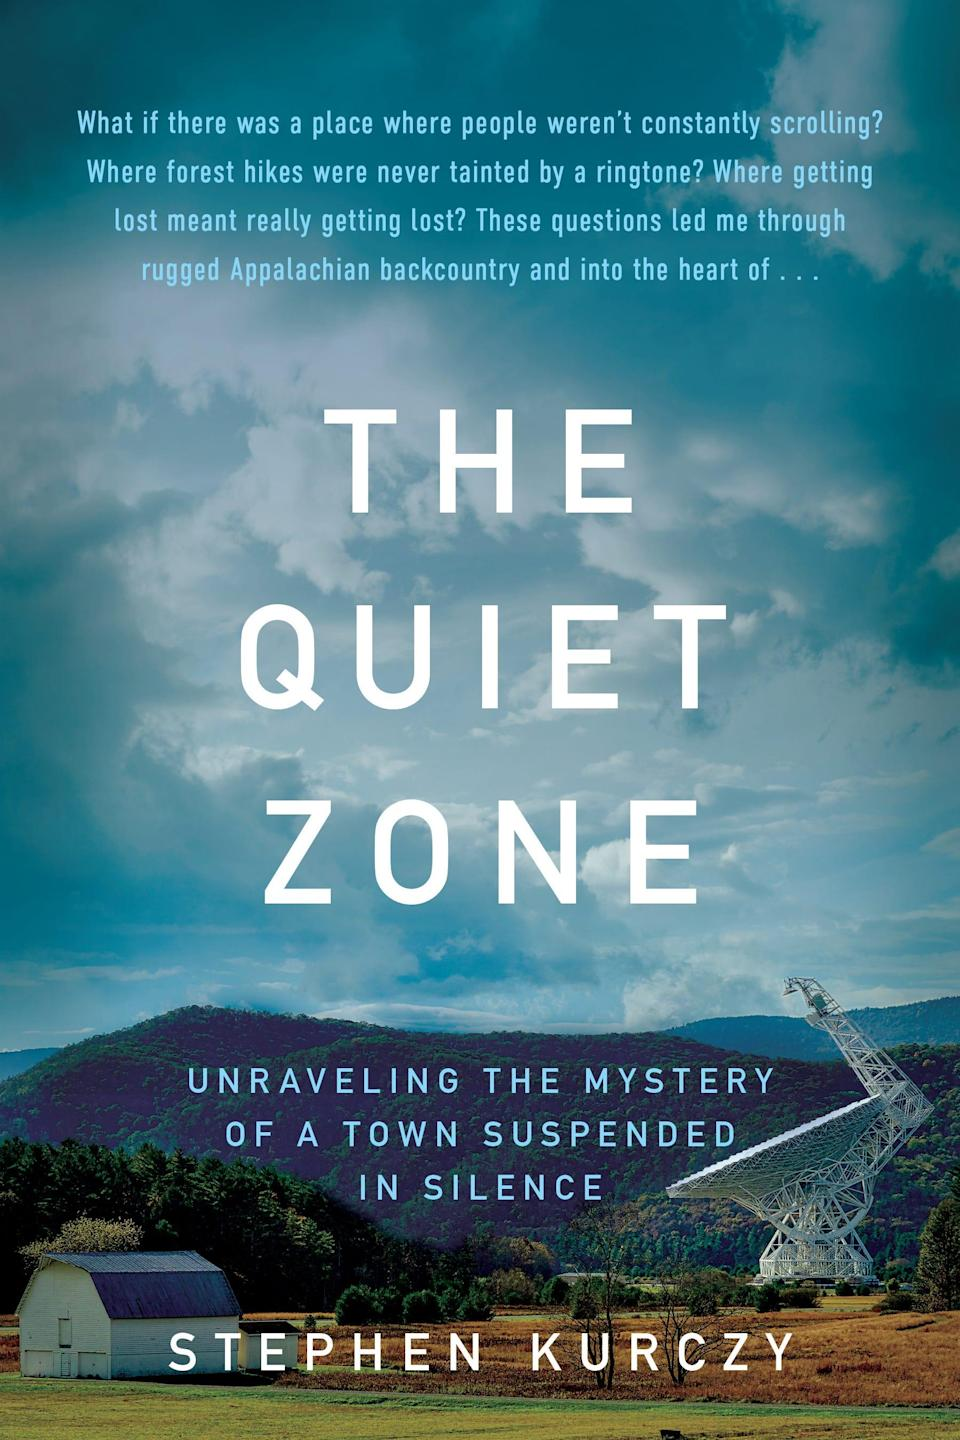 """""""The Quiet Zone: Unraveling the Mystery of a Town Suspended in Silence,"""" by Stephen Kurczy."""